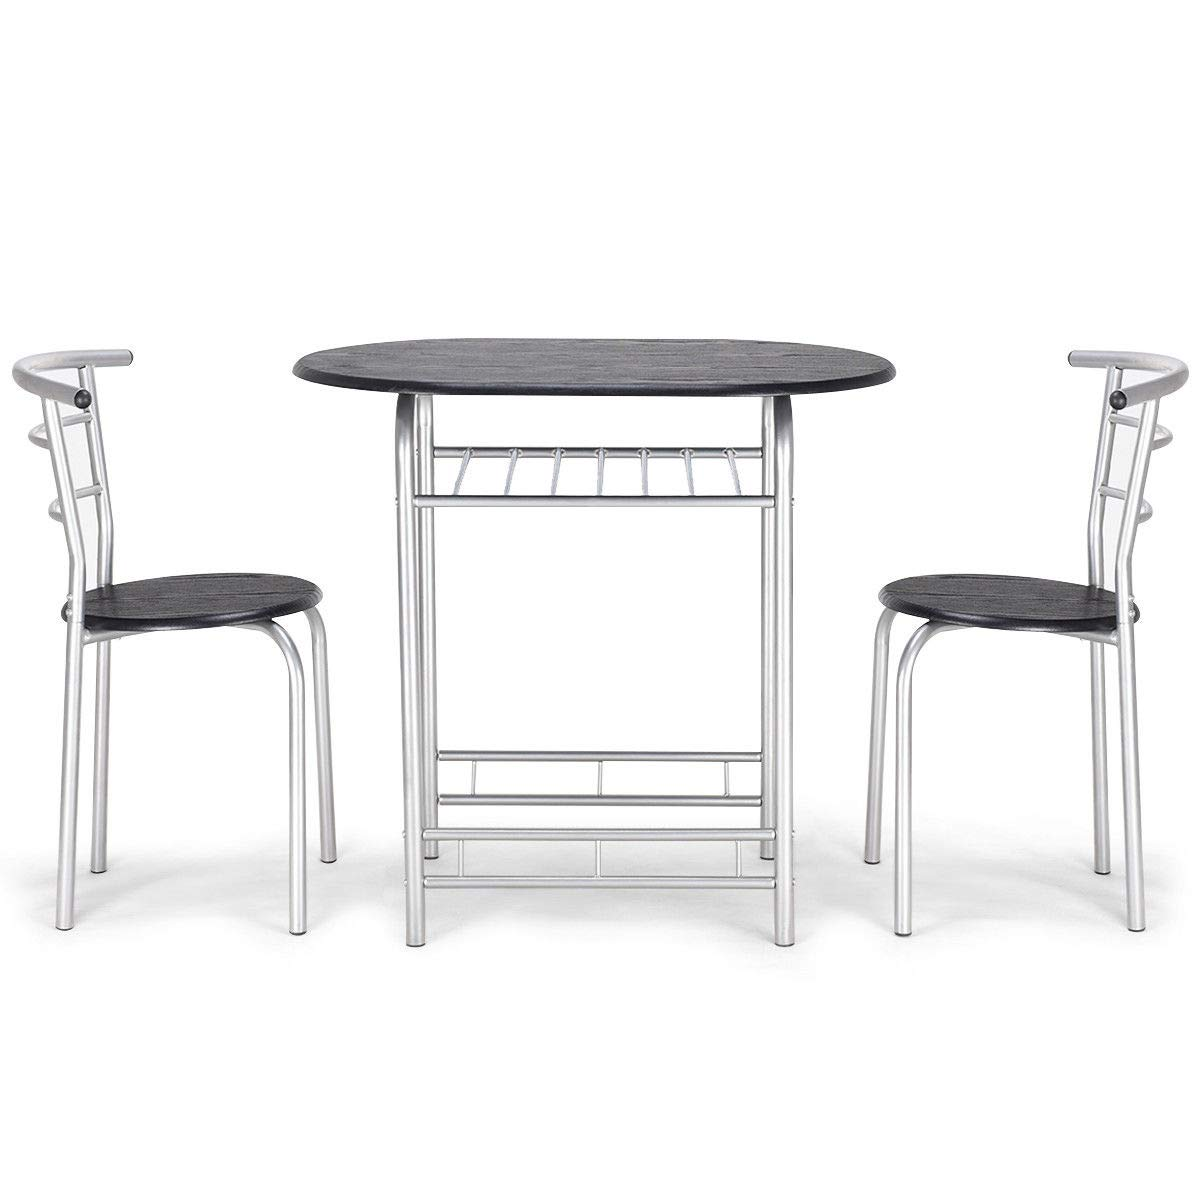 3 PCS Bistro Dining Set Table/and 2 Chairs Kitchen Furniture Pub Home Restaurant